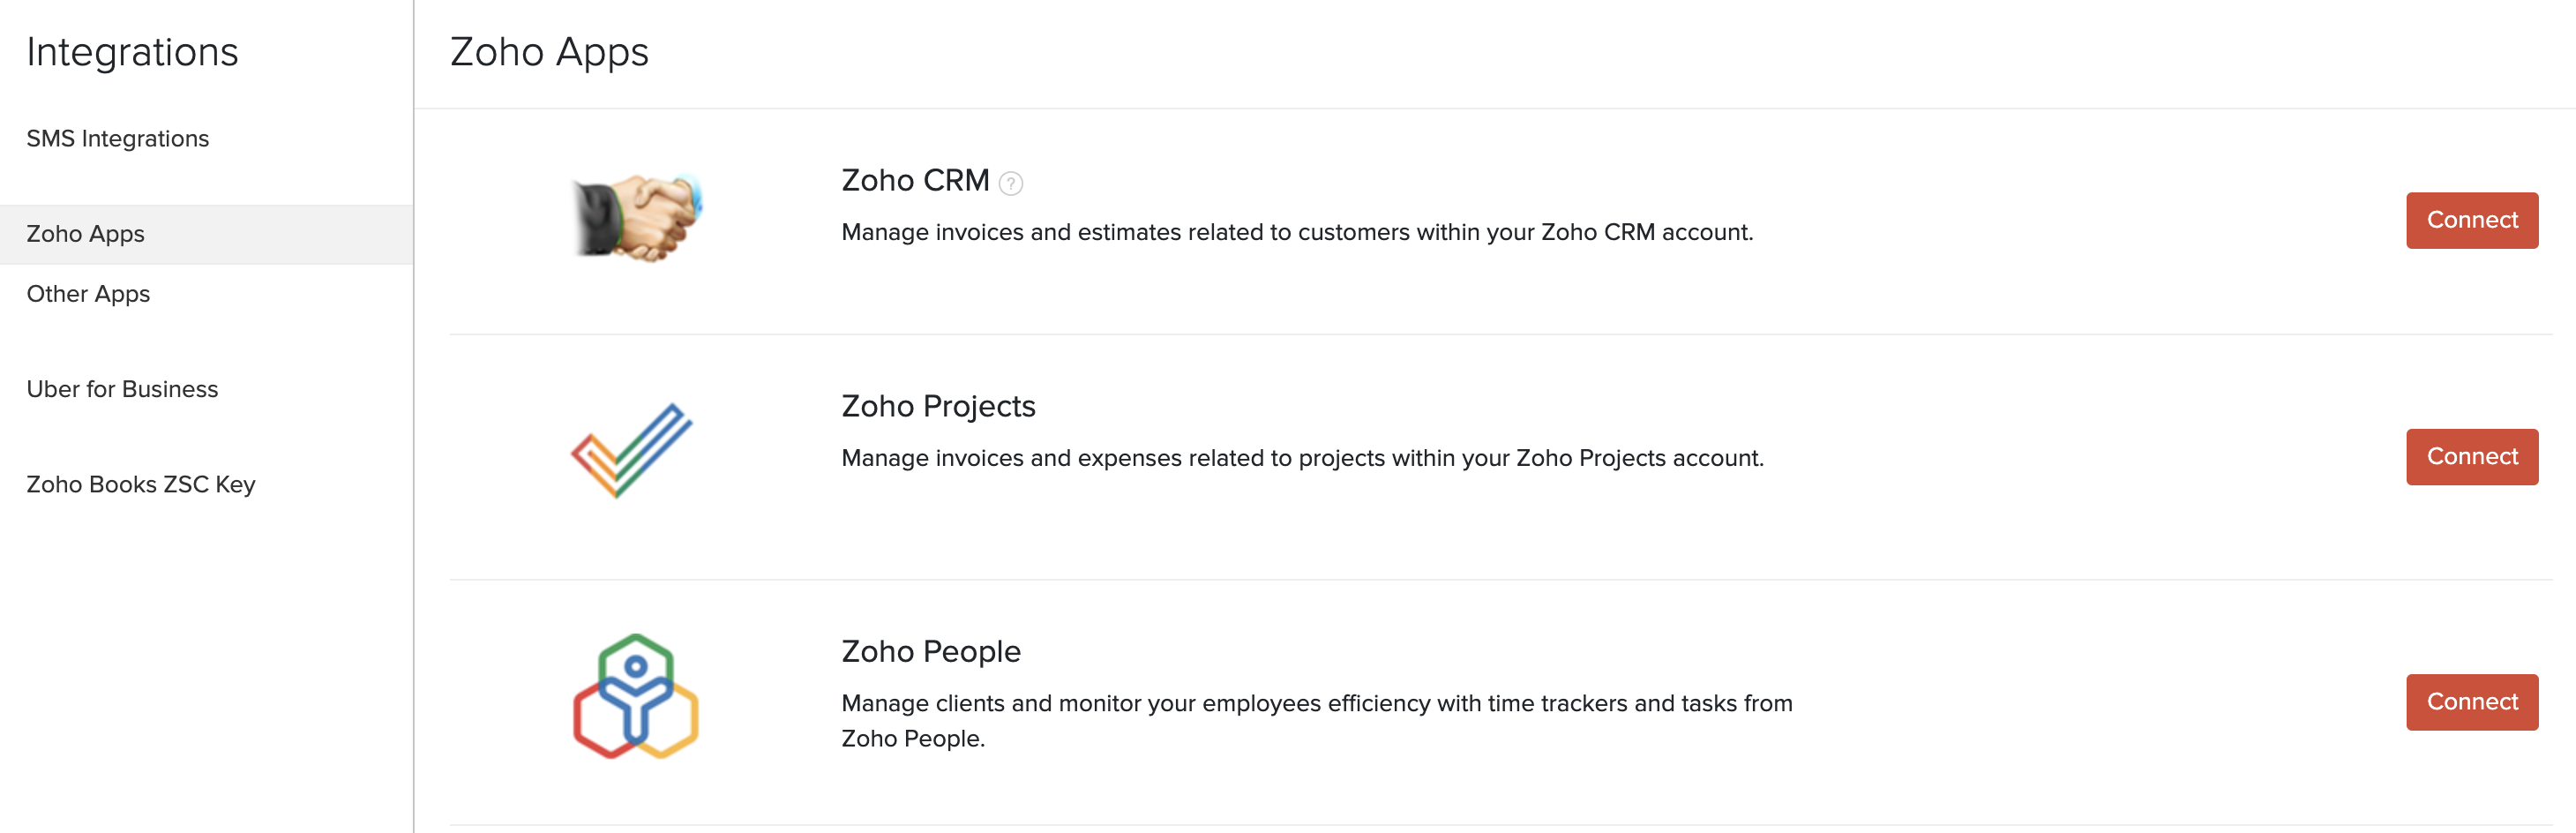 Zoho People Integration